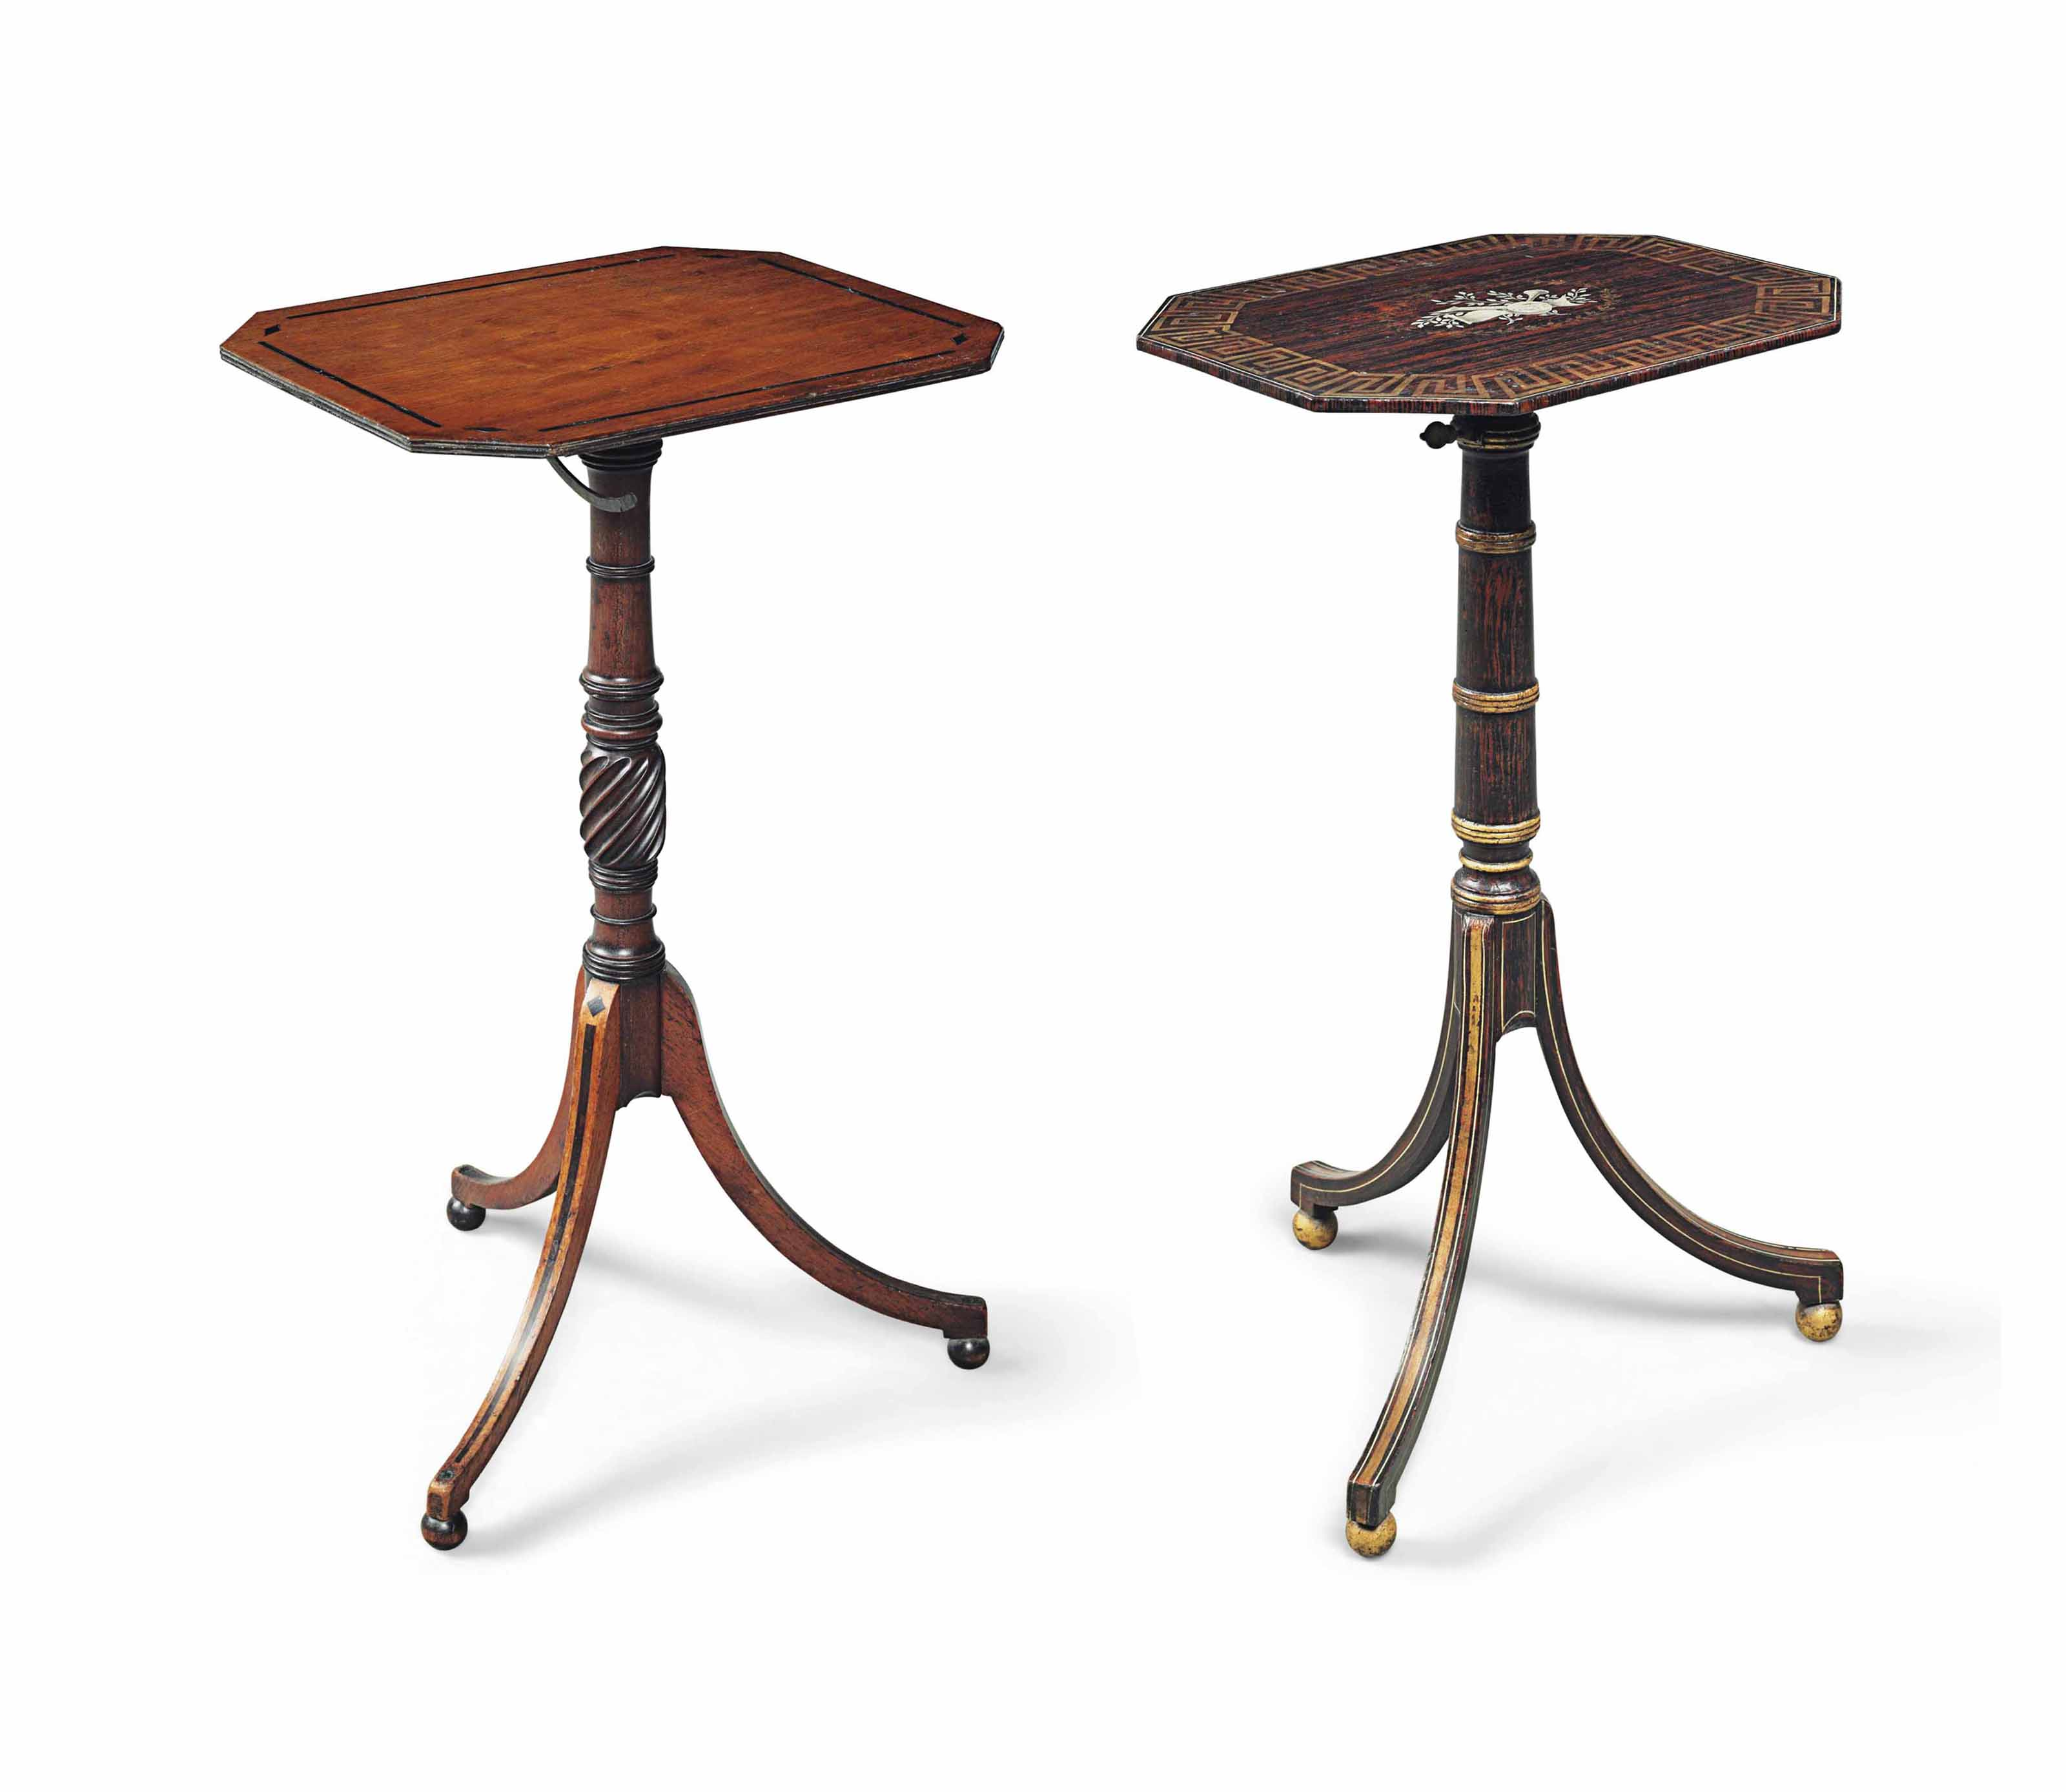 TWO REGENCY OCCASIONAL TABLES